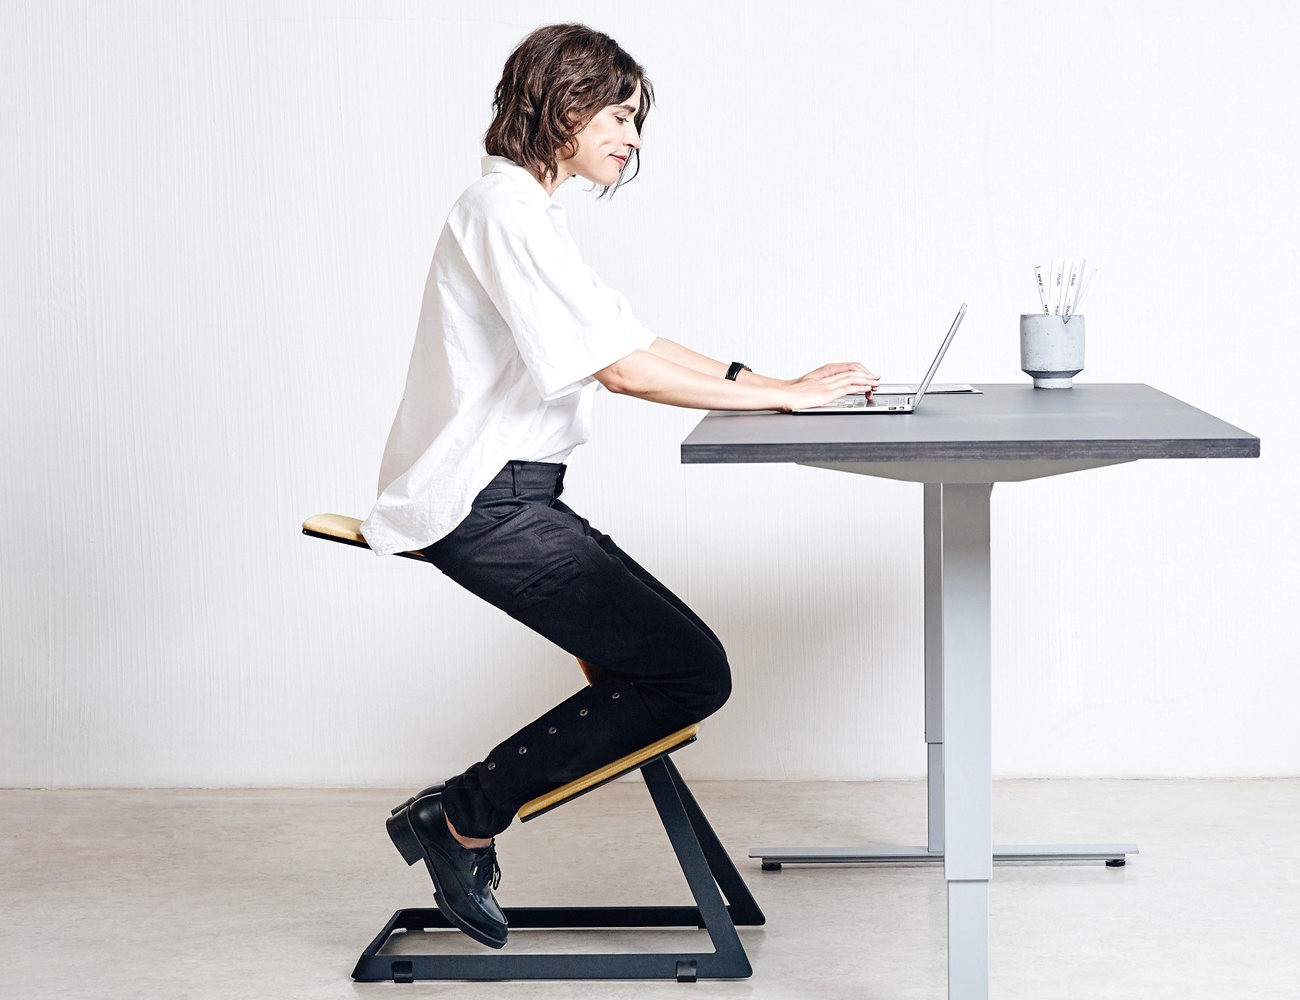 sit more comfortably and healthily with the w chair the truly ergonomic desk chair the unique w shape of this chair allows you to sit while relieving the